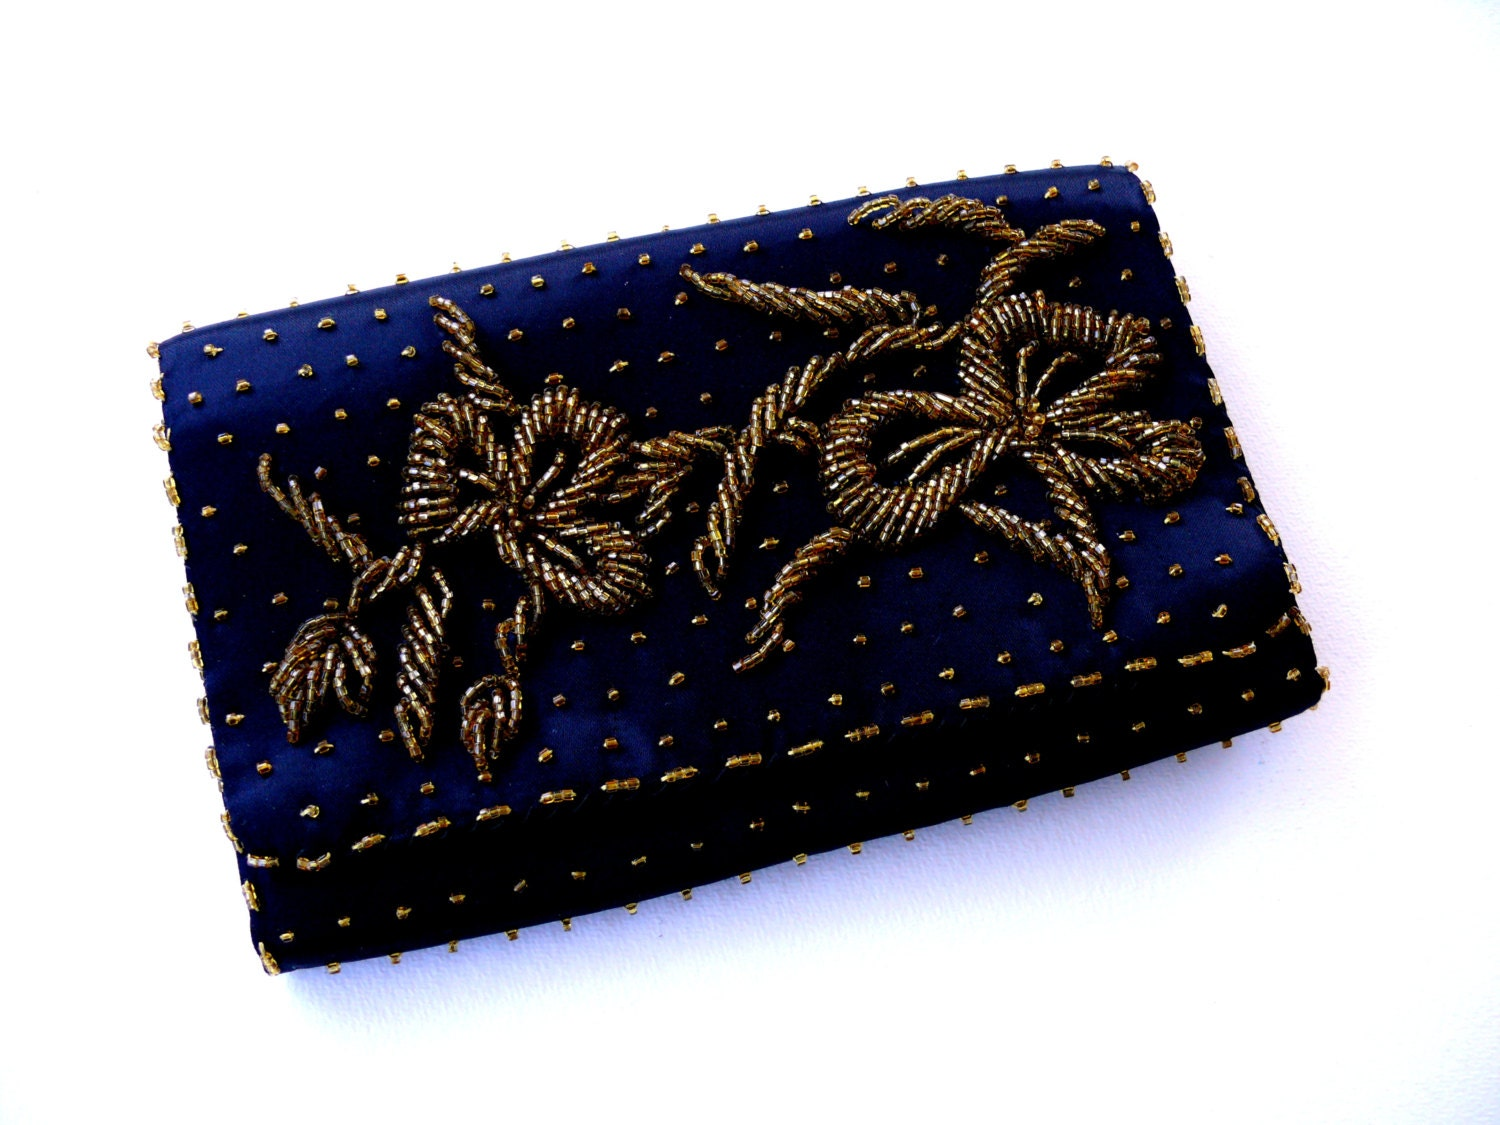 We traveled to some of the most exotic locales and were inspired to create this clutch, featuring an enchanting arrangement of mixed-metallic beads.